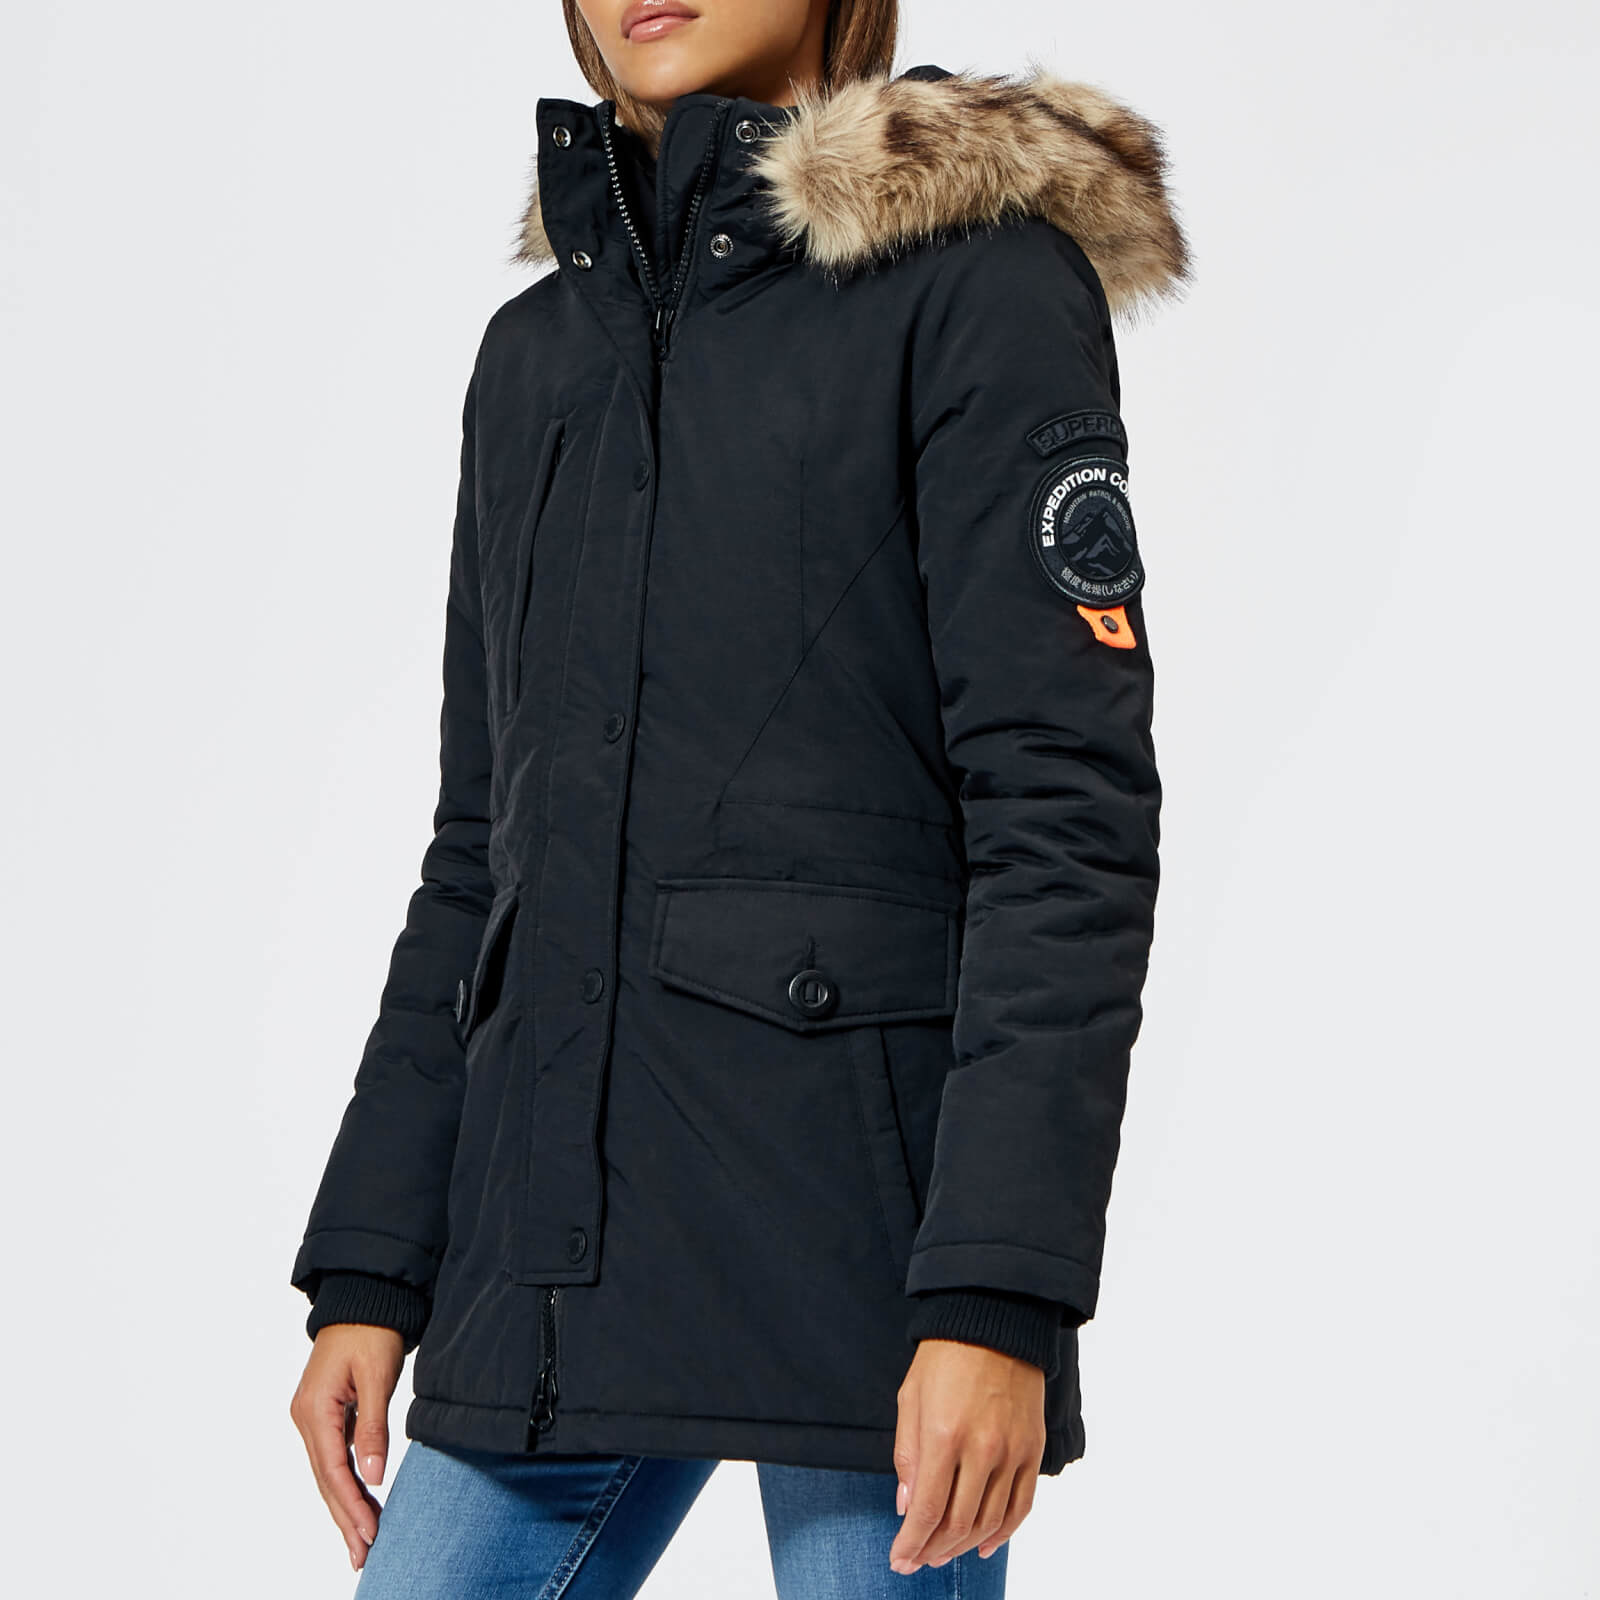 Superdry Ashley Online Sale, UP TO 20 OFF